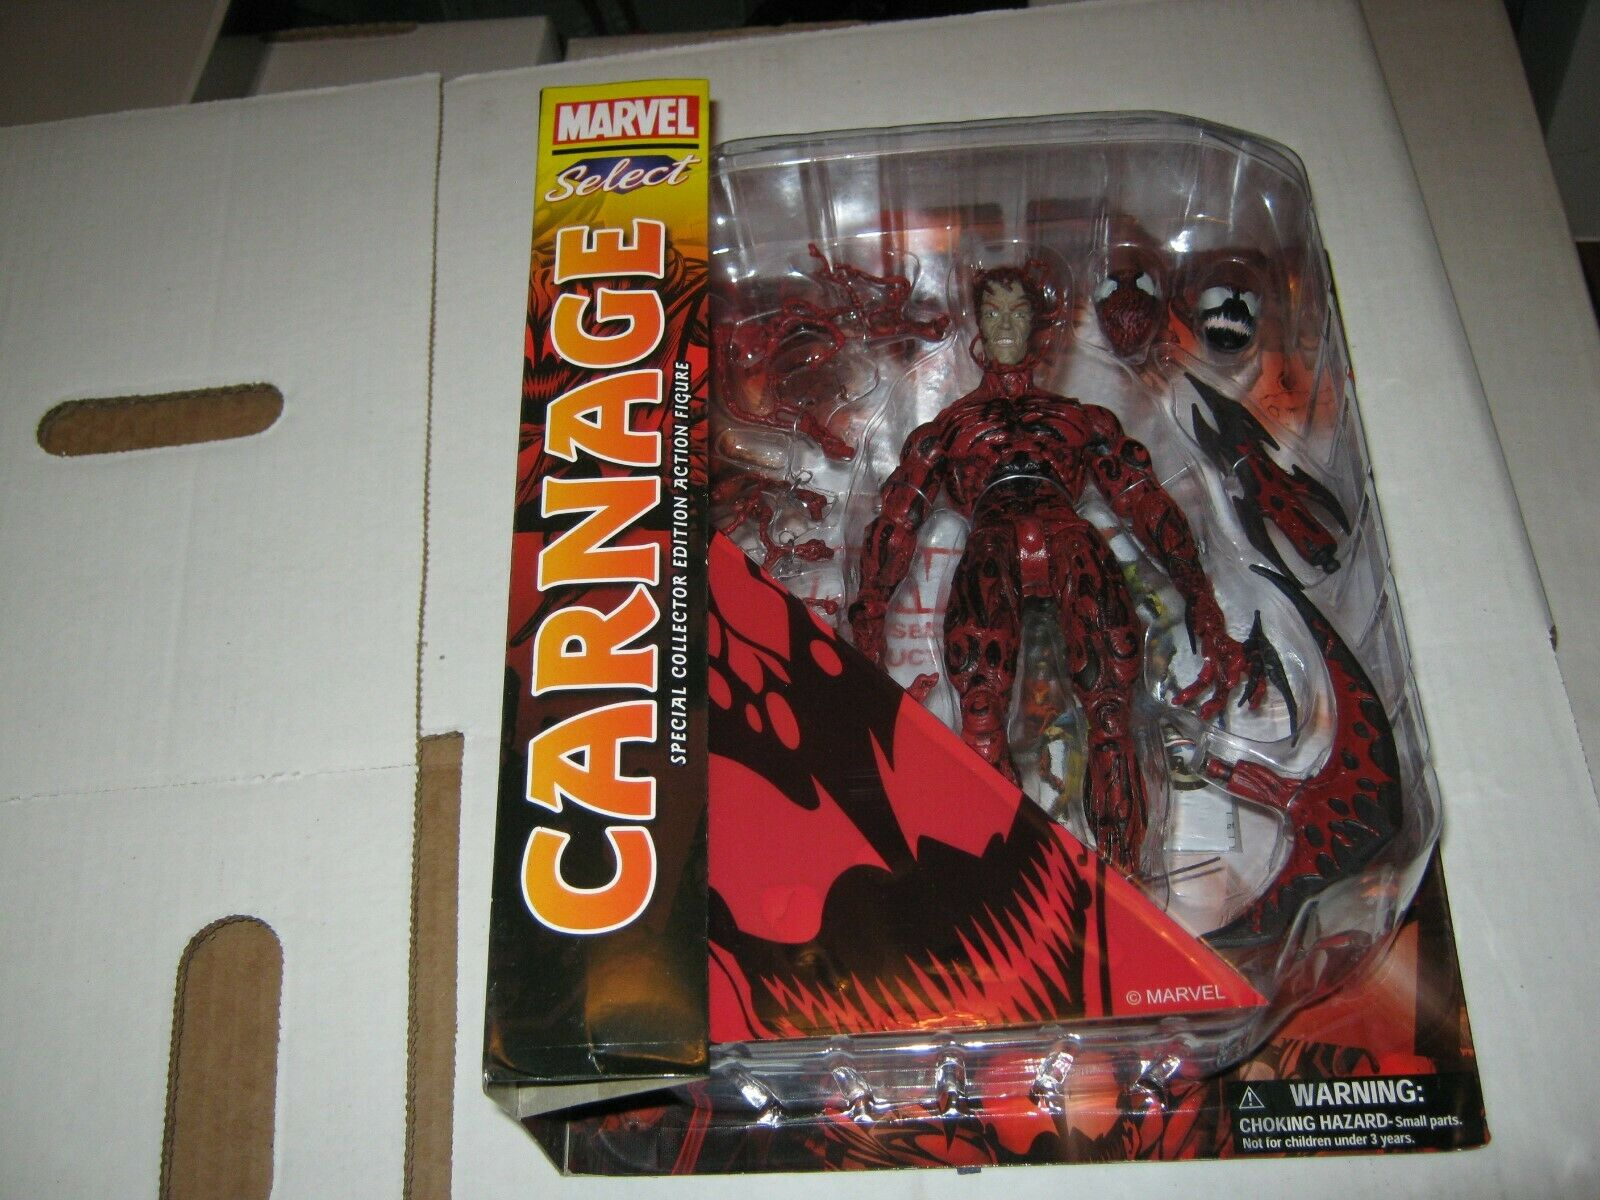 Diamond Select Toys Marvel Carnage Action Figure Discontinued by manufacturer